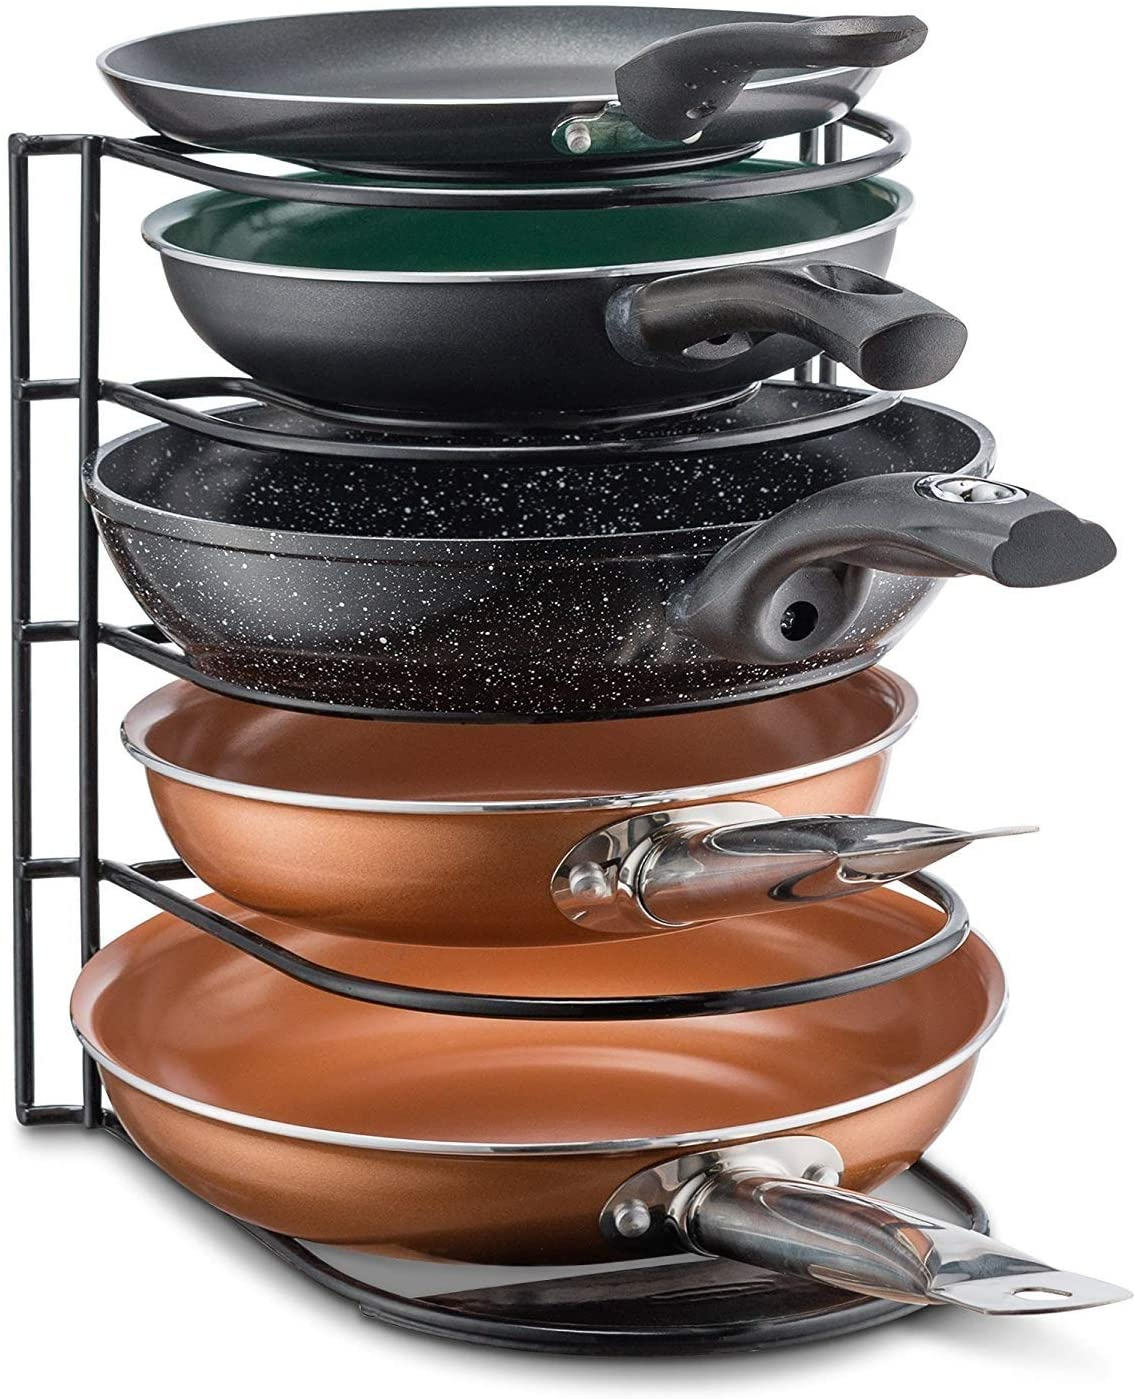 What to Know Before Buying Pot and Pan Organizers?